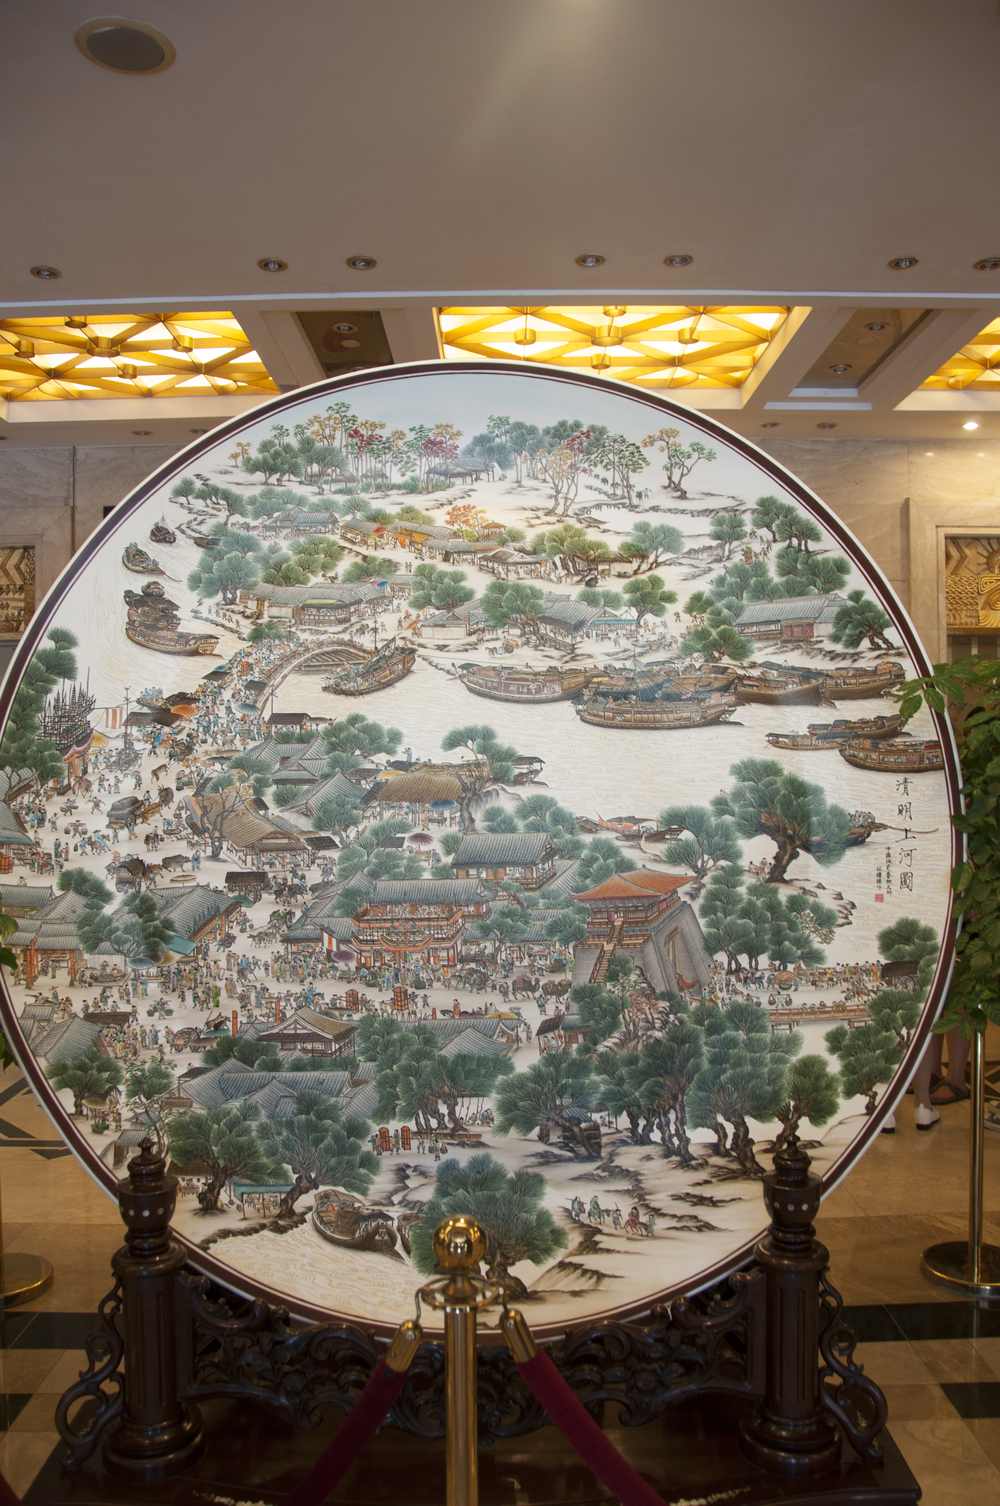 Teochew ceramic art